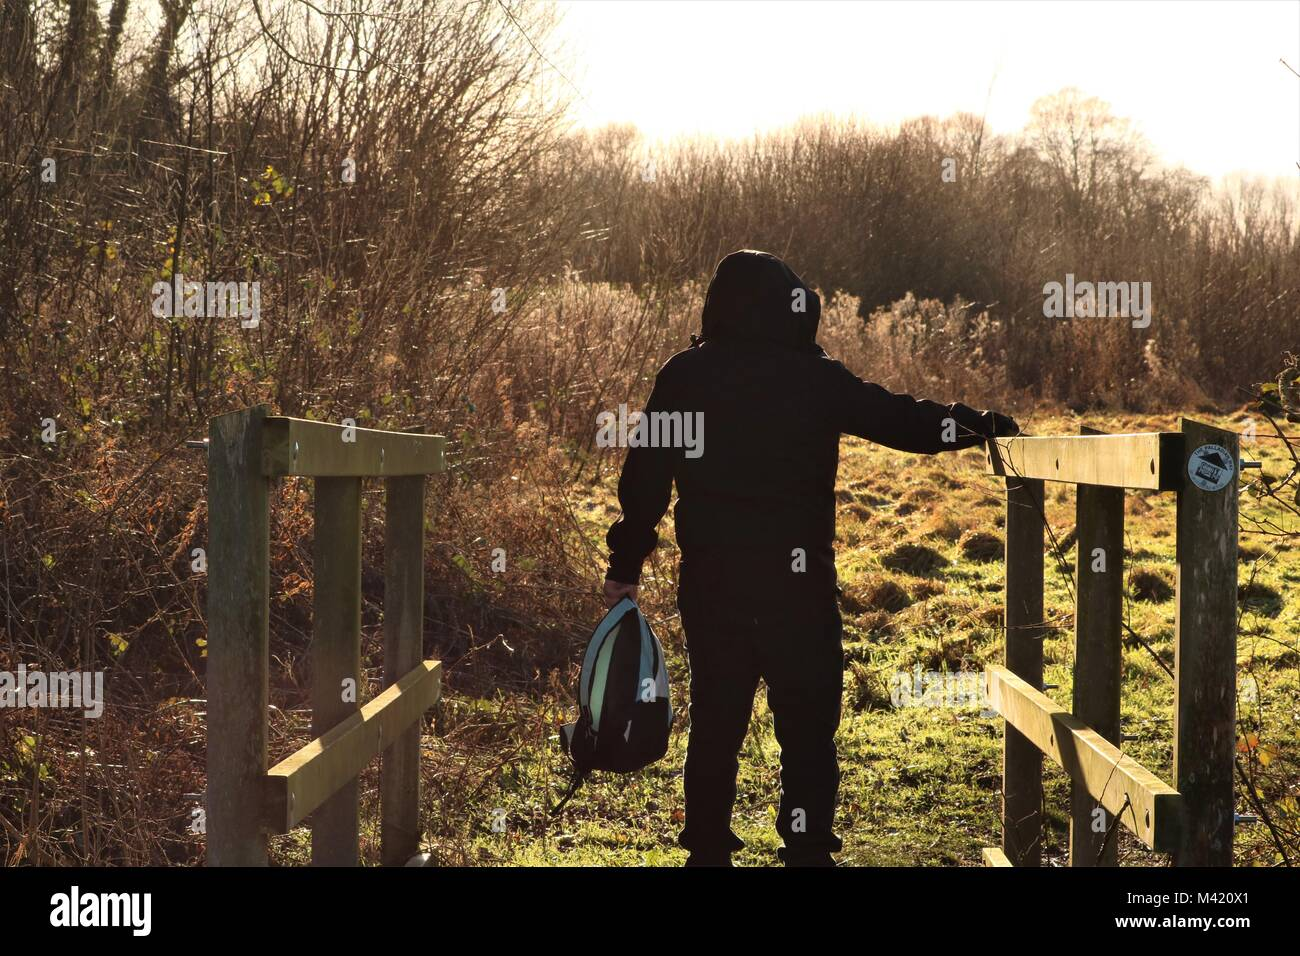 Man wearing a hoody holding on to wooden hand rail walking on bridge in the sunshine on a Winter's day - Stock Image